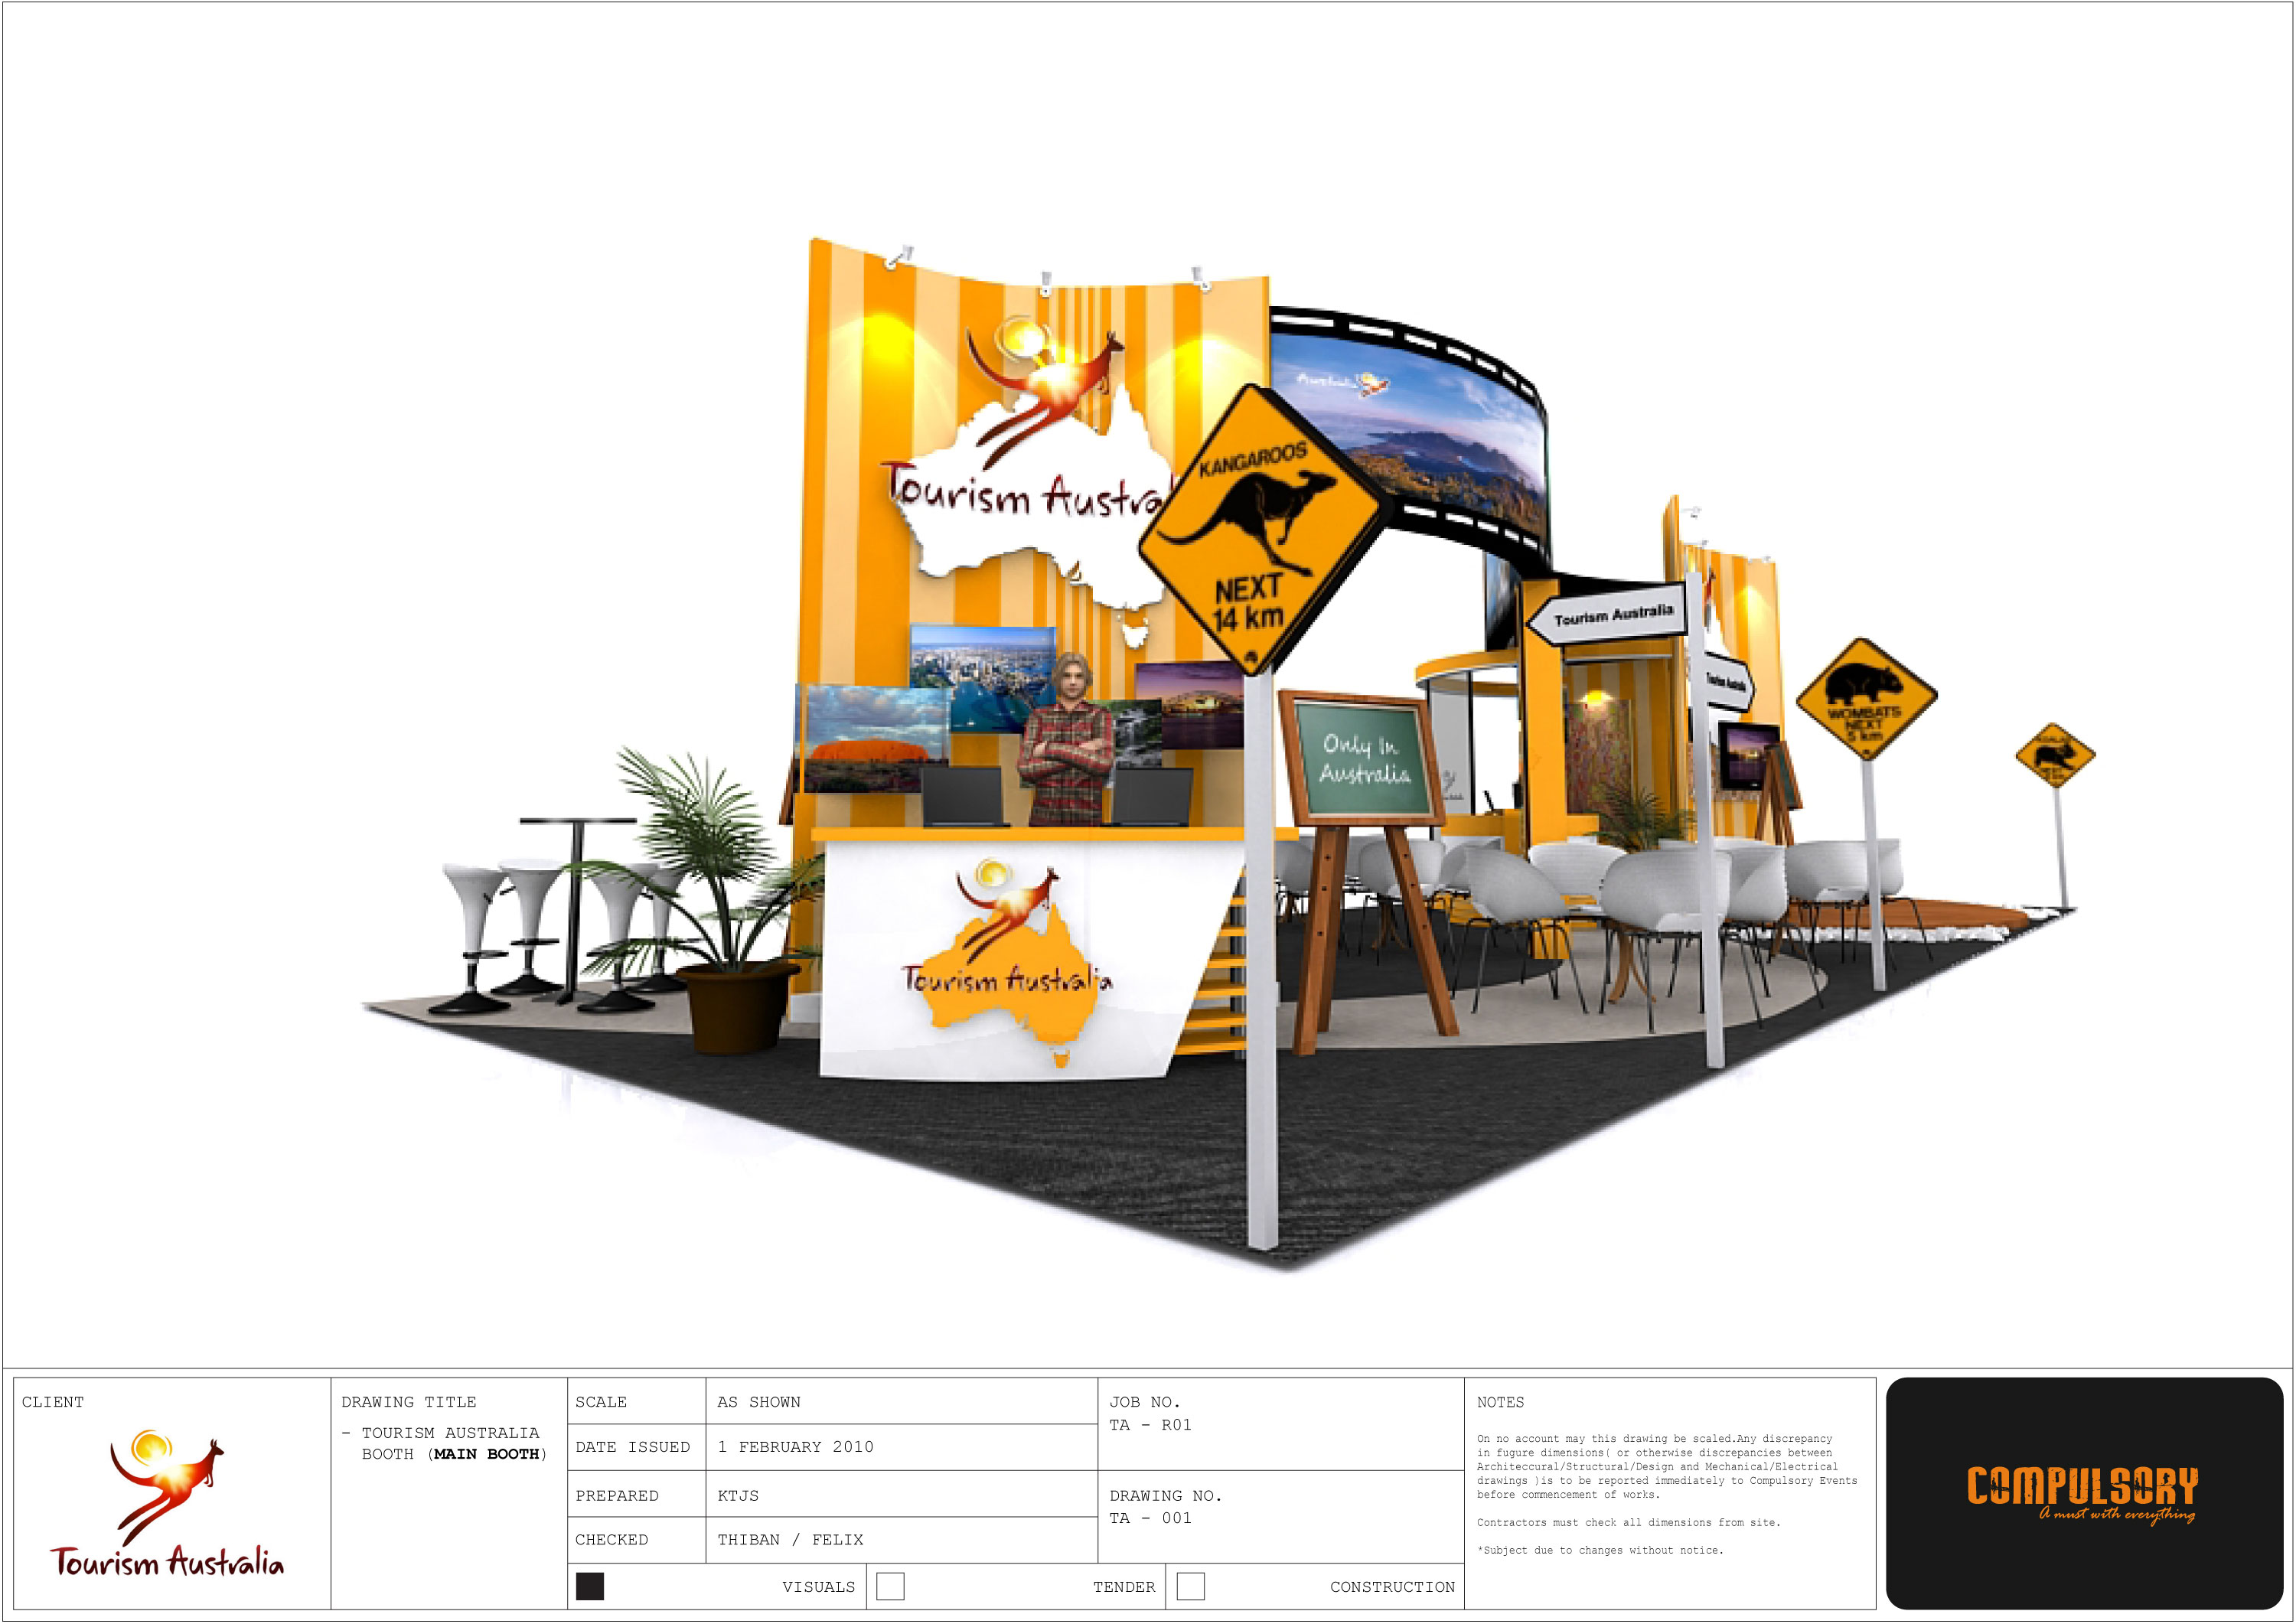 Tourism Exhibition Booth Design : Exhibition design by kenneth tan at coroflot